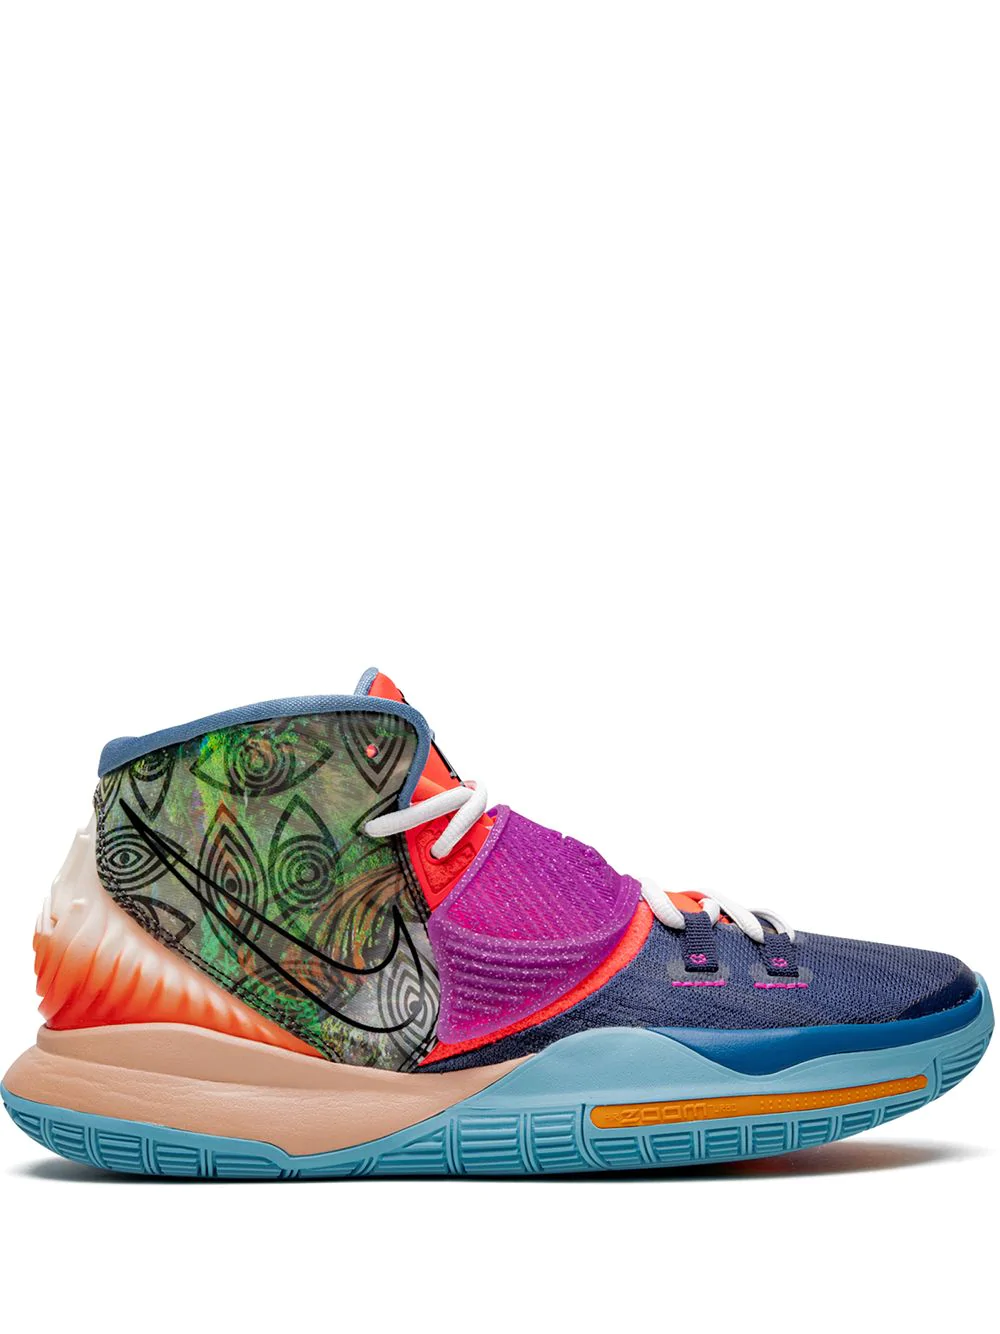 Kyrie irving shoes, Nike kyrie